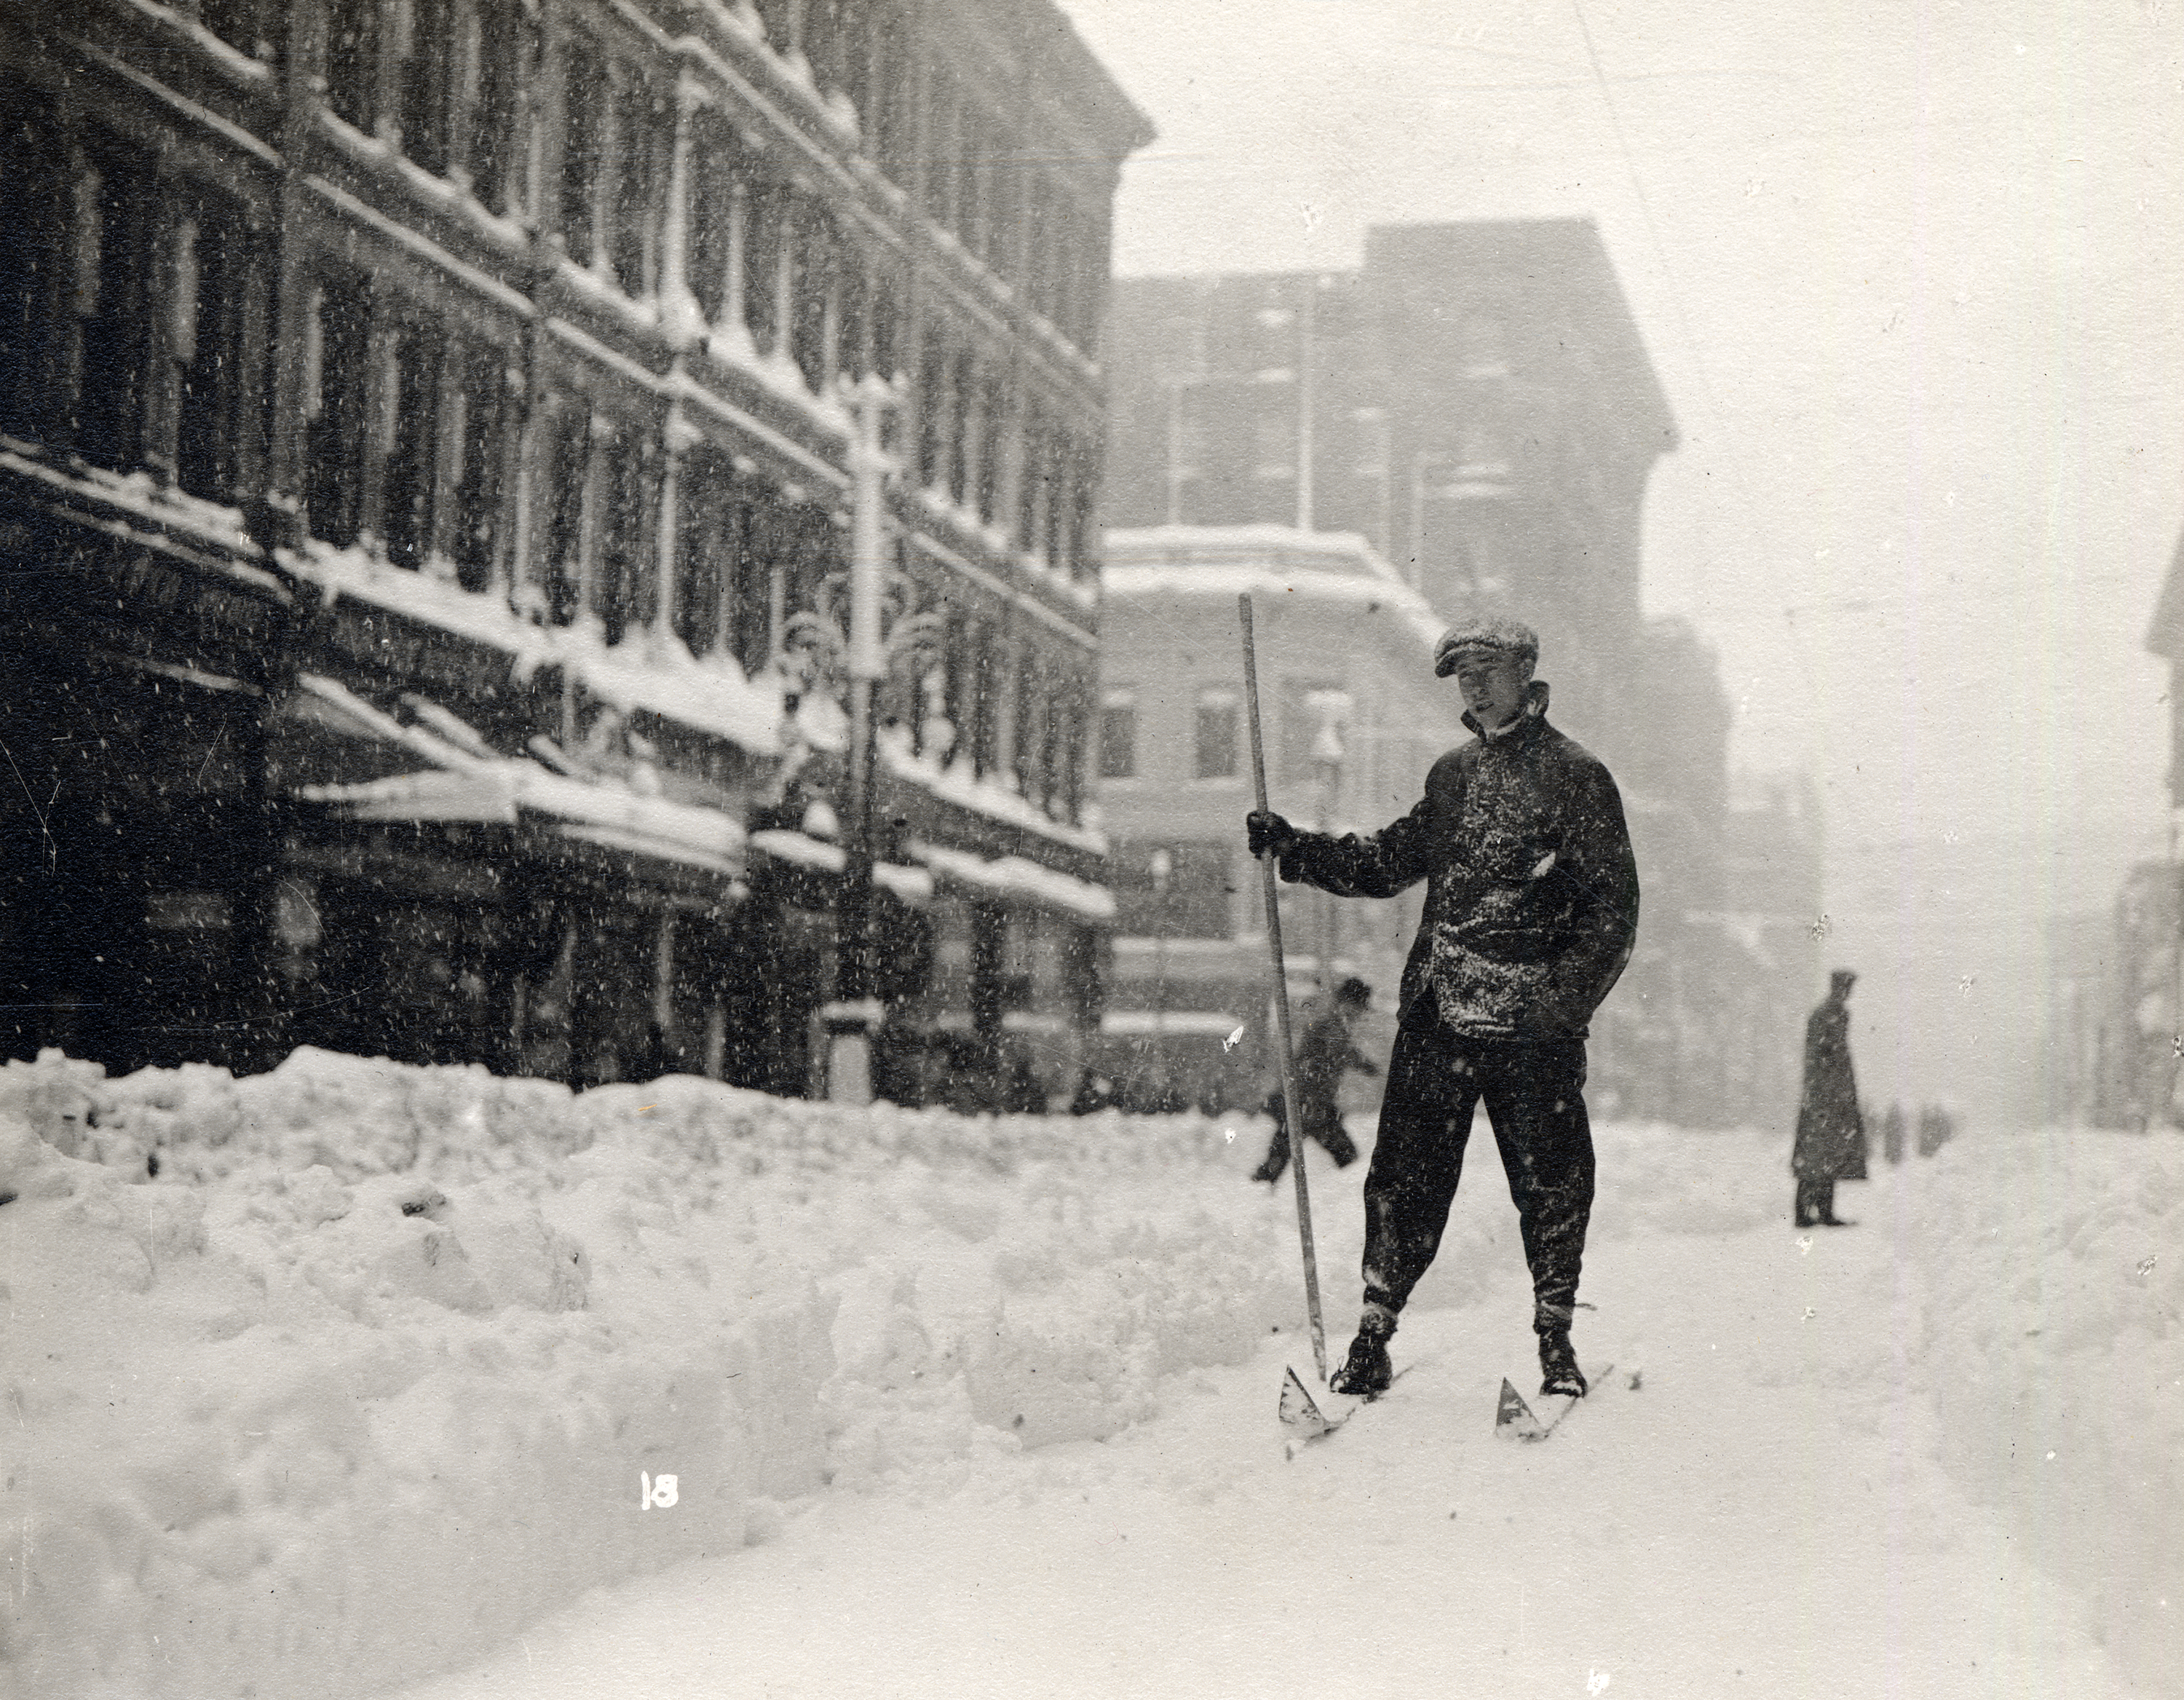 Photo of a young man on skis and holding a pole while skiing through the snow-covered street of downtown Denver. Snow is falling, and there is a narrow path cleared between large snowdrifts on what would be the city street.